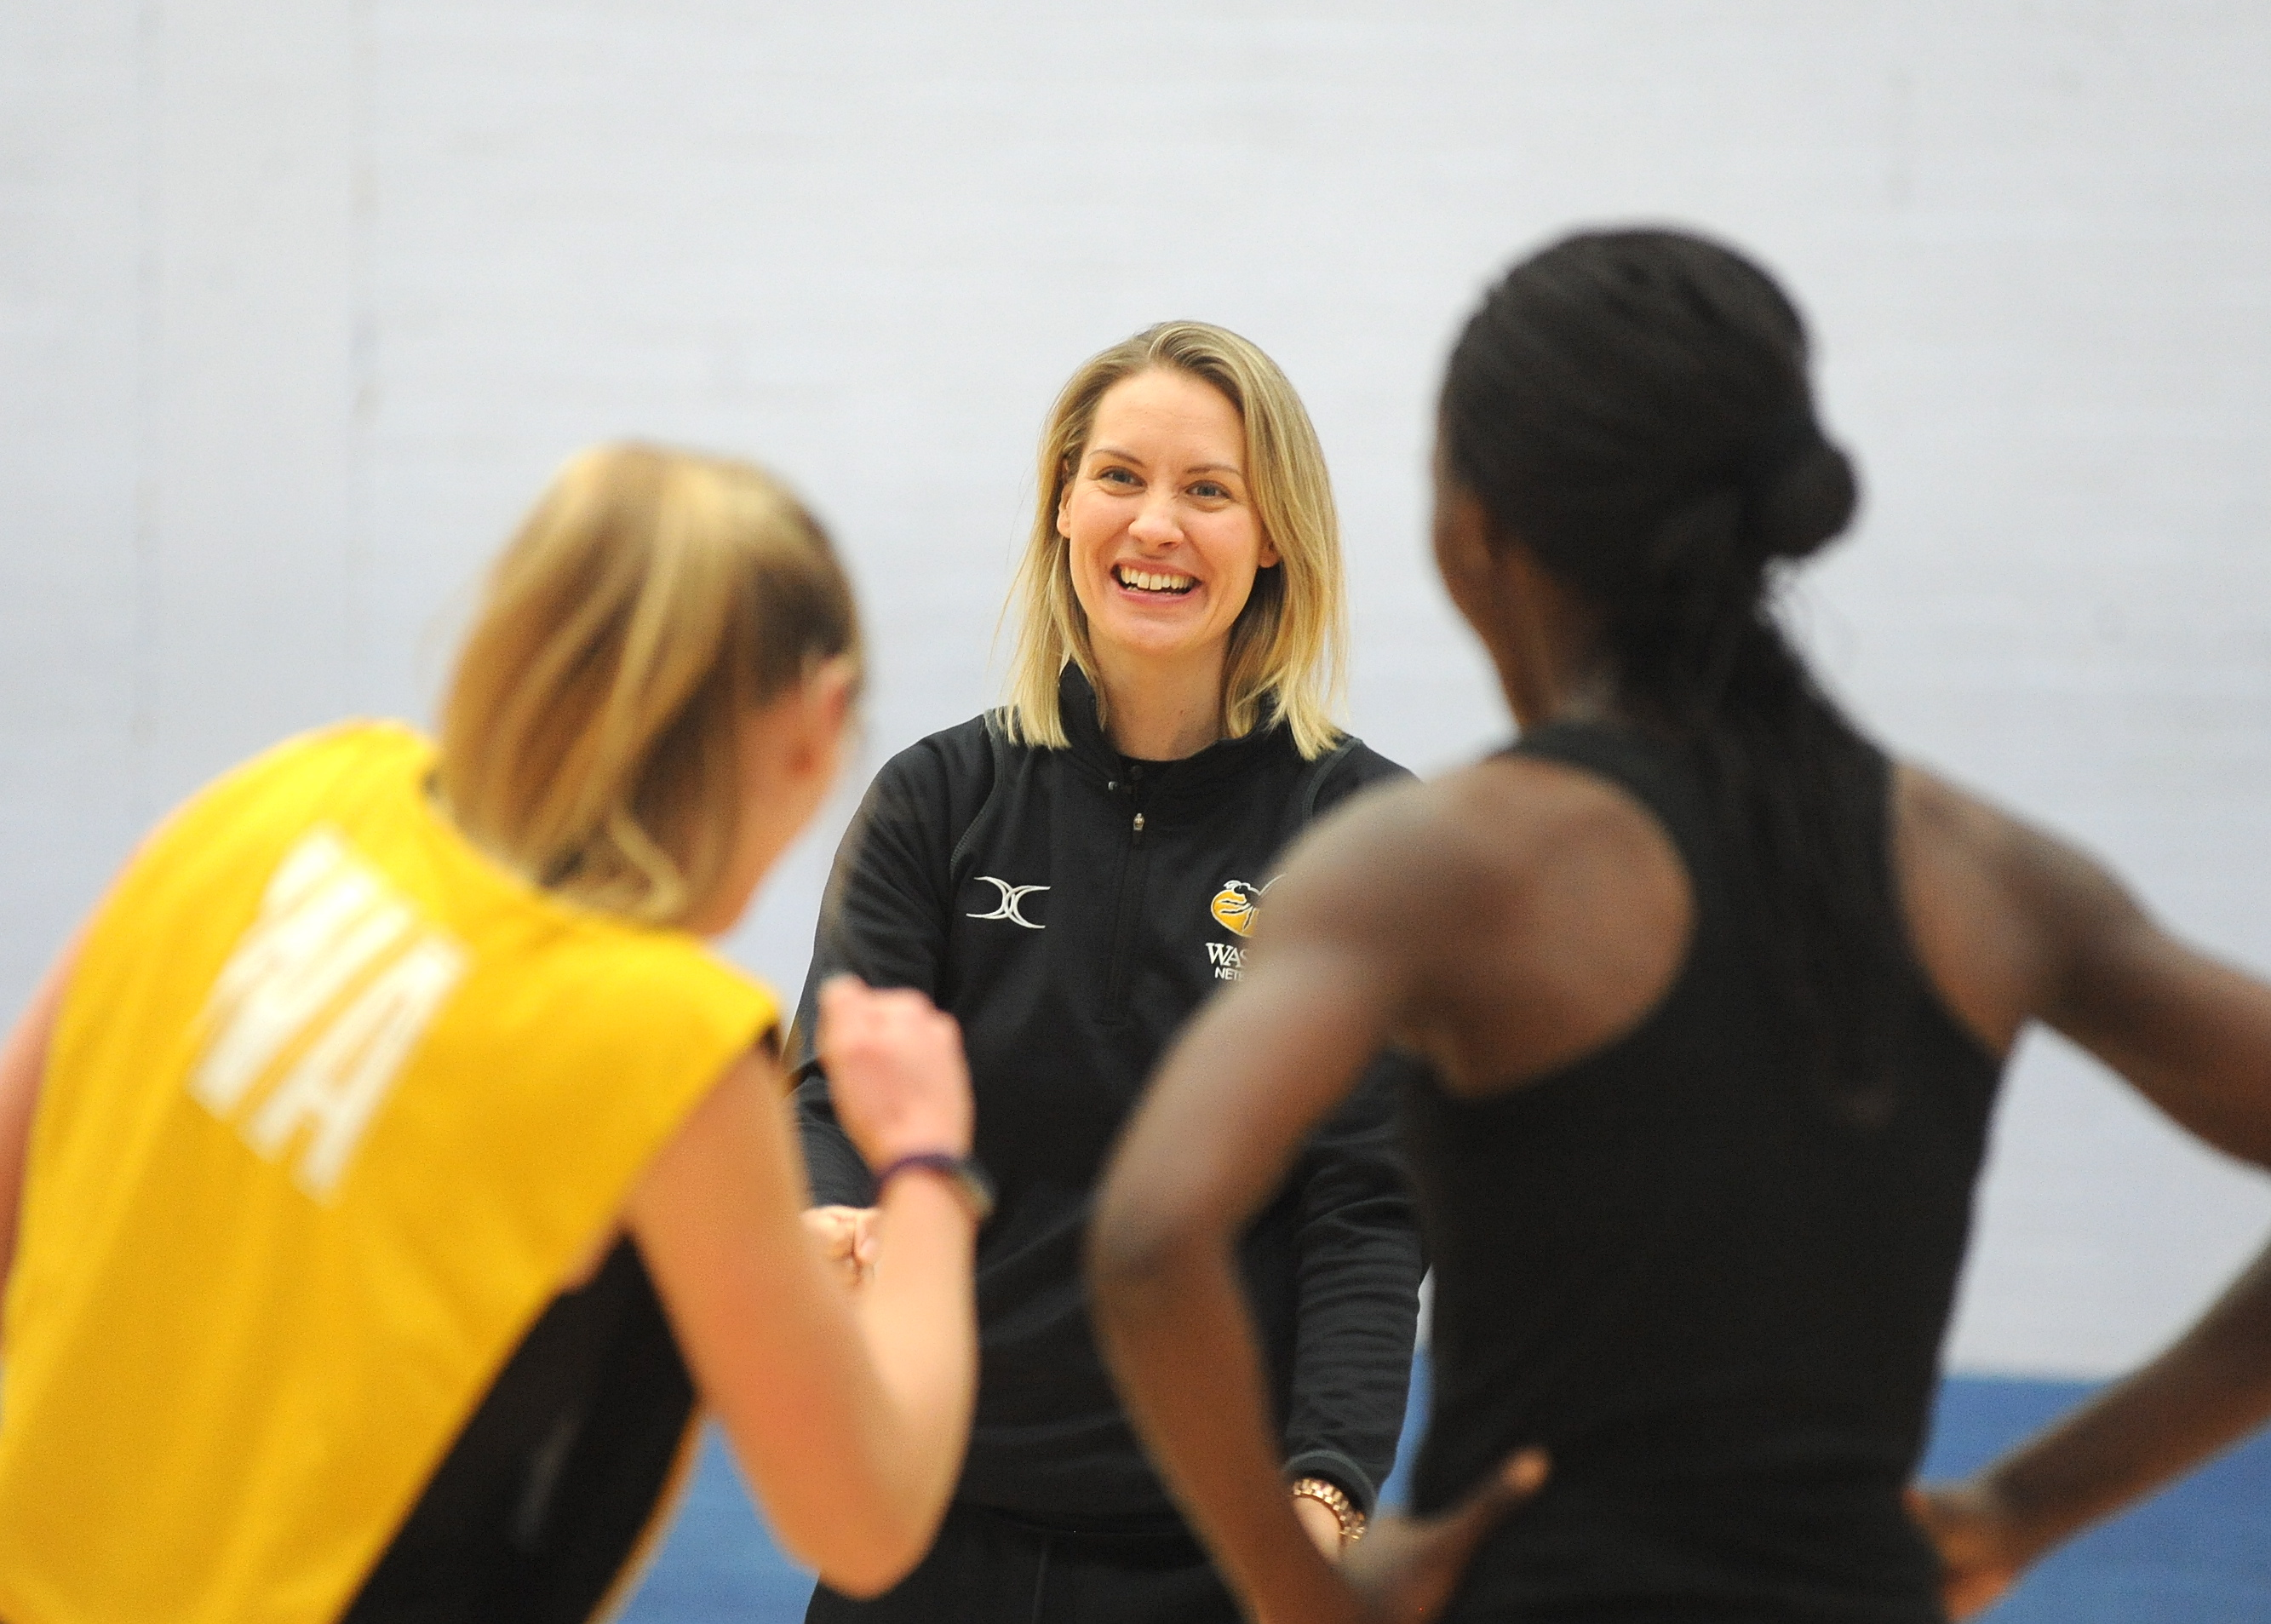 wasps-netball-second-game-preview